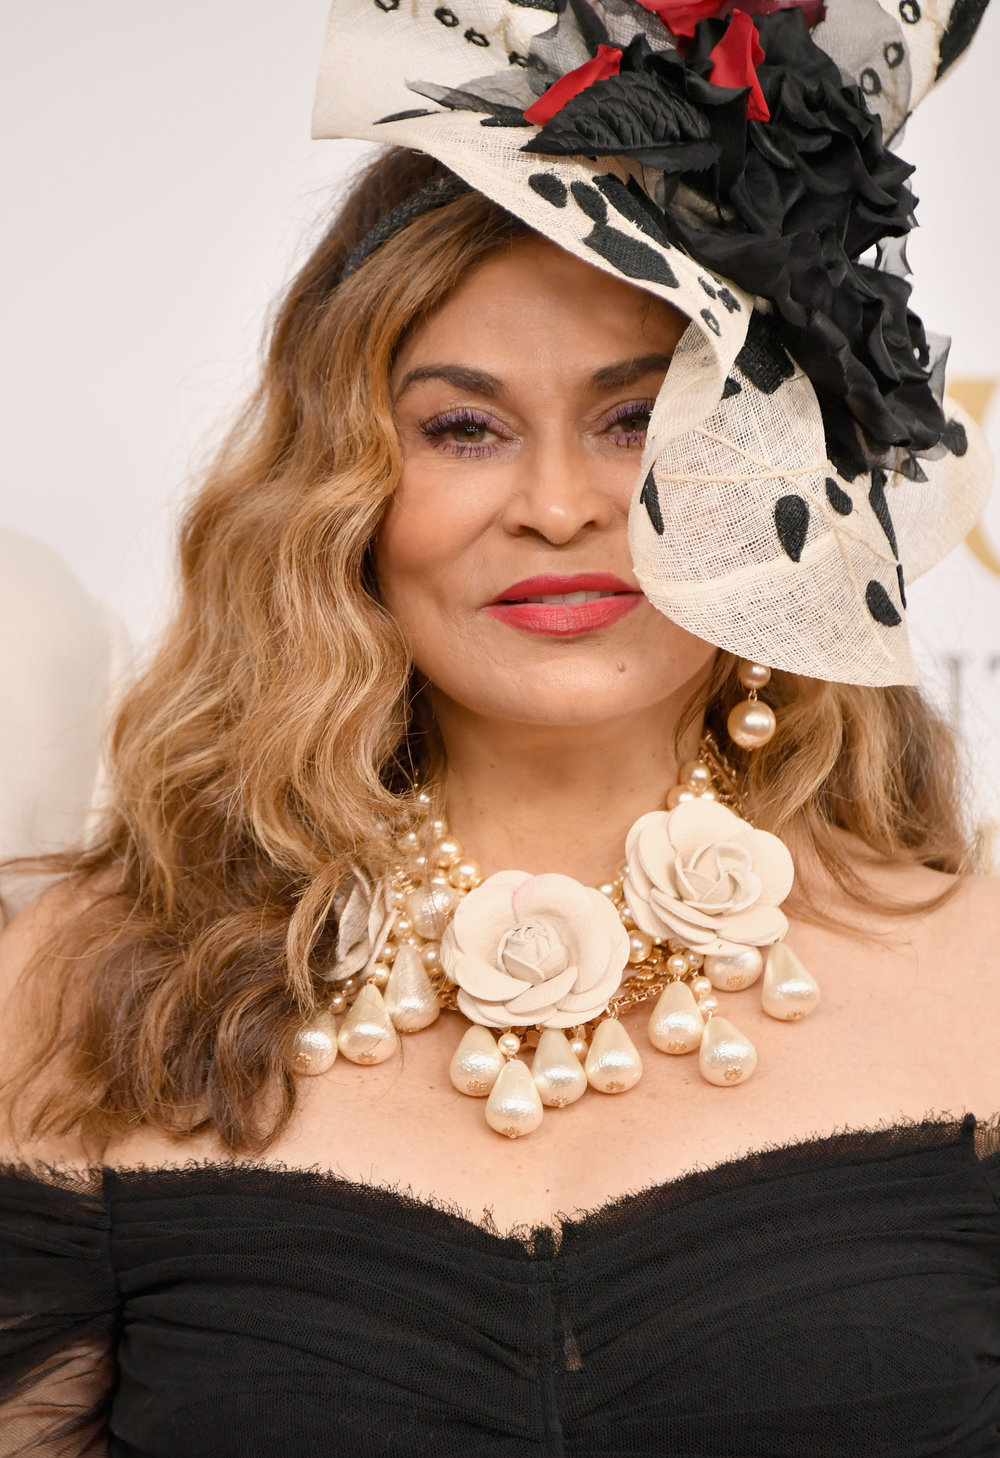 LOUISVILLE, KY - MAY 05: Tina Lawson attends Kentucky Derby 144 on May 5, 2018 in Louisville, Kentucky.  (Photo by Michael Loccisano/Getty Images for Churchill Downs) *** Local Caption *** Tina Lawson